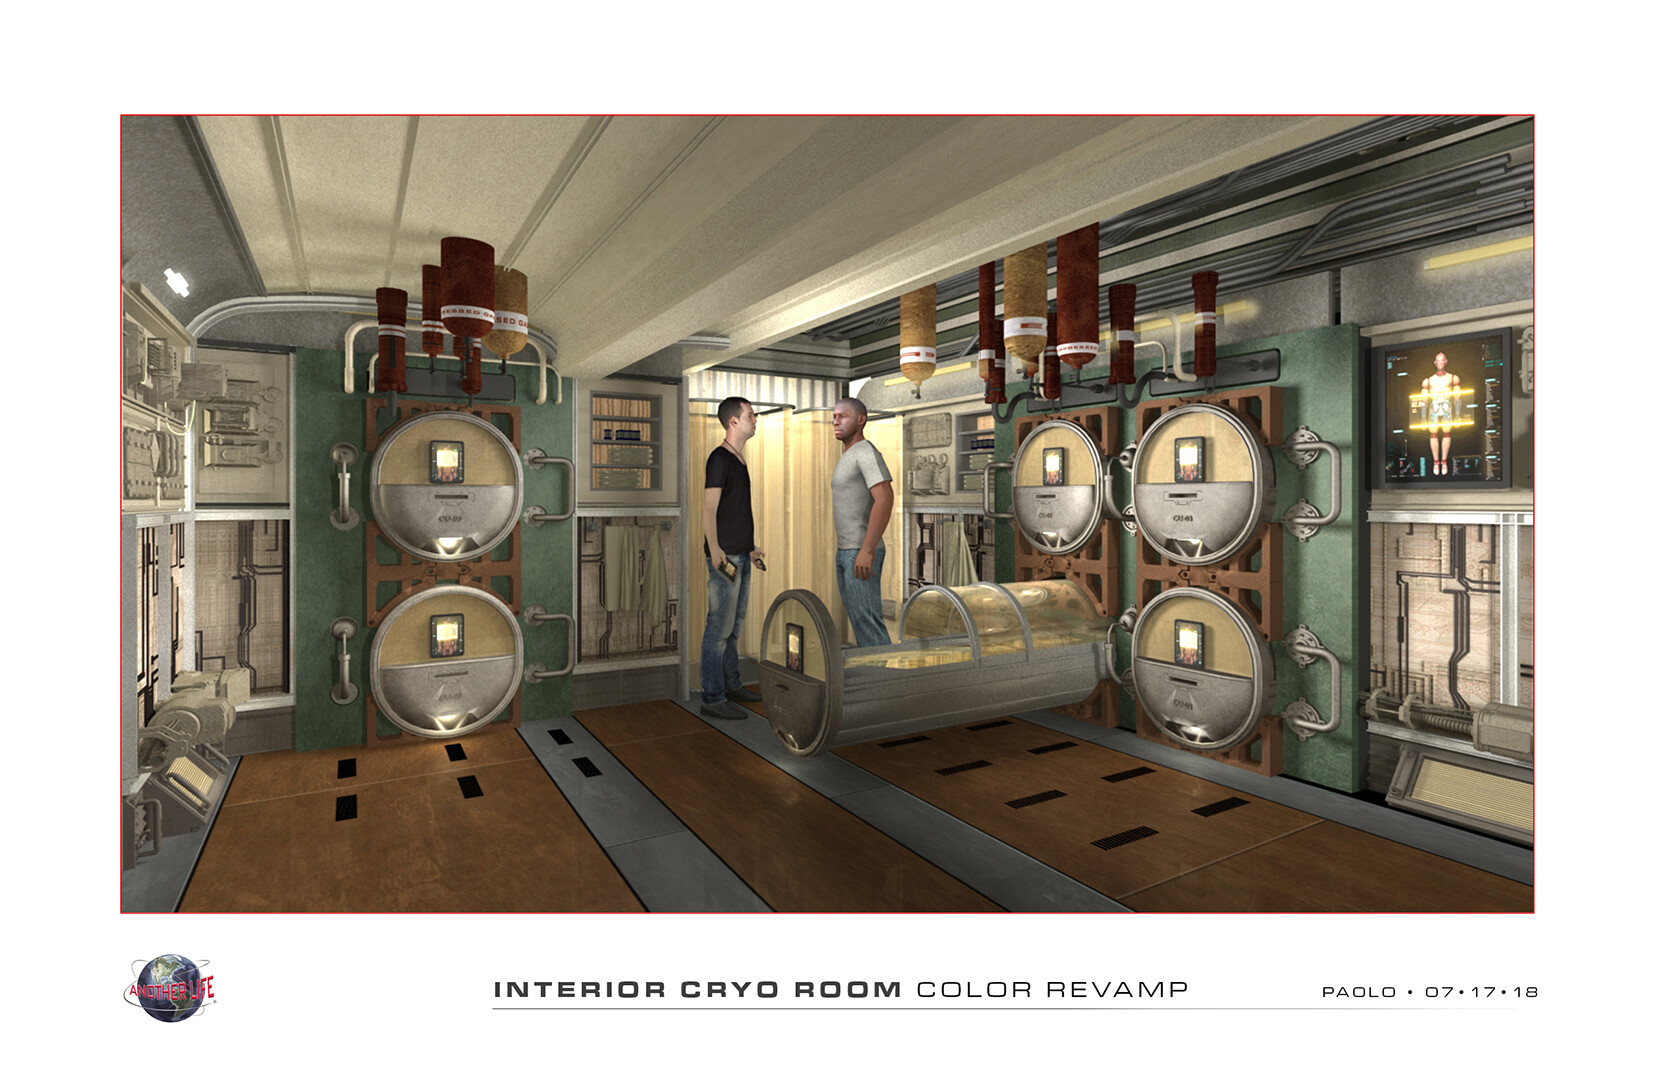 Interior Cryo Room / Another Life